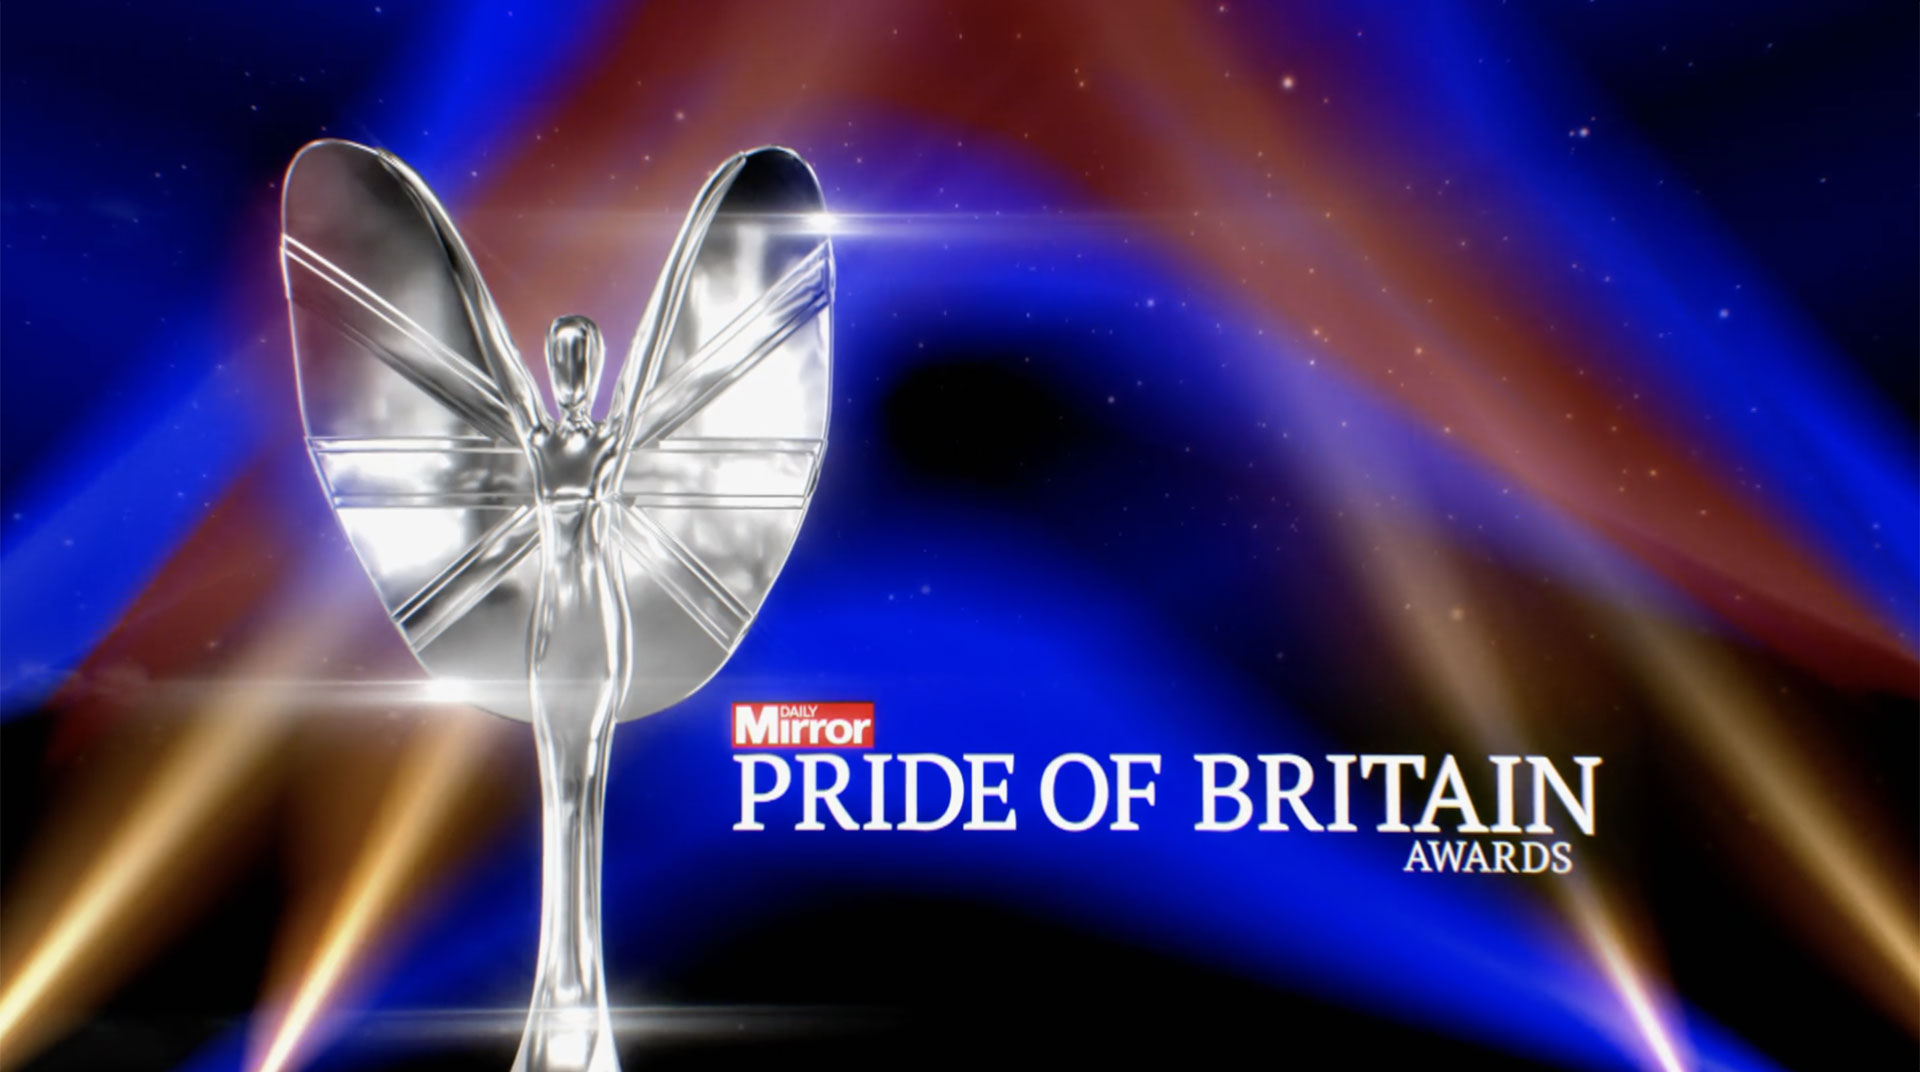 PRIDE OF BRITAIN 2019